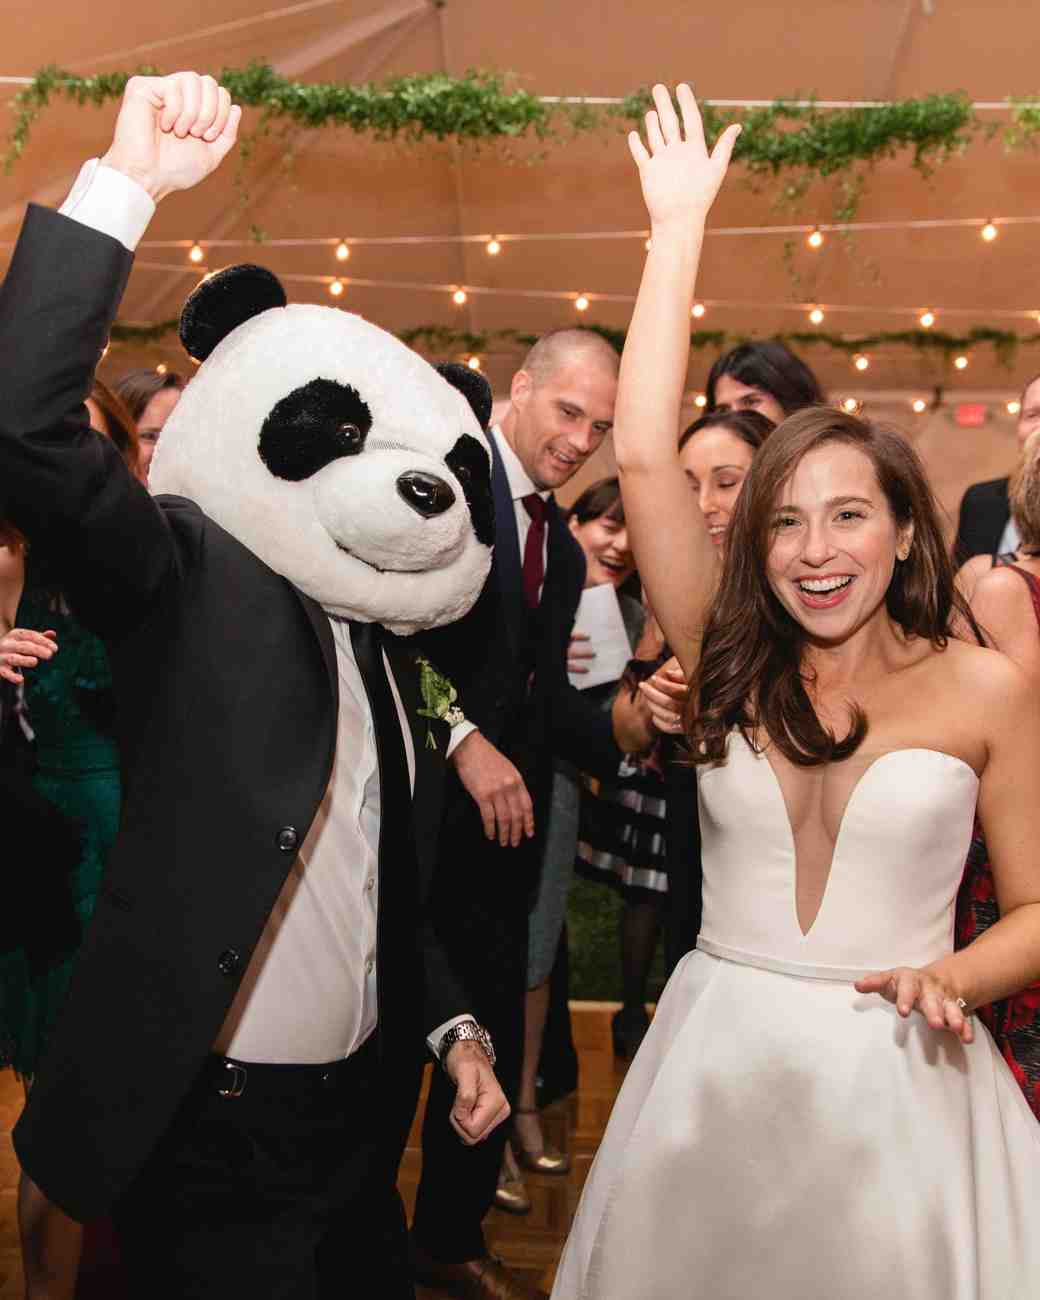 wedding dancing panda